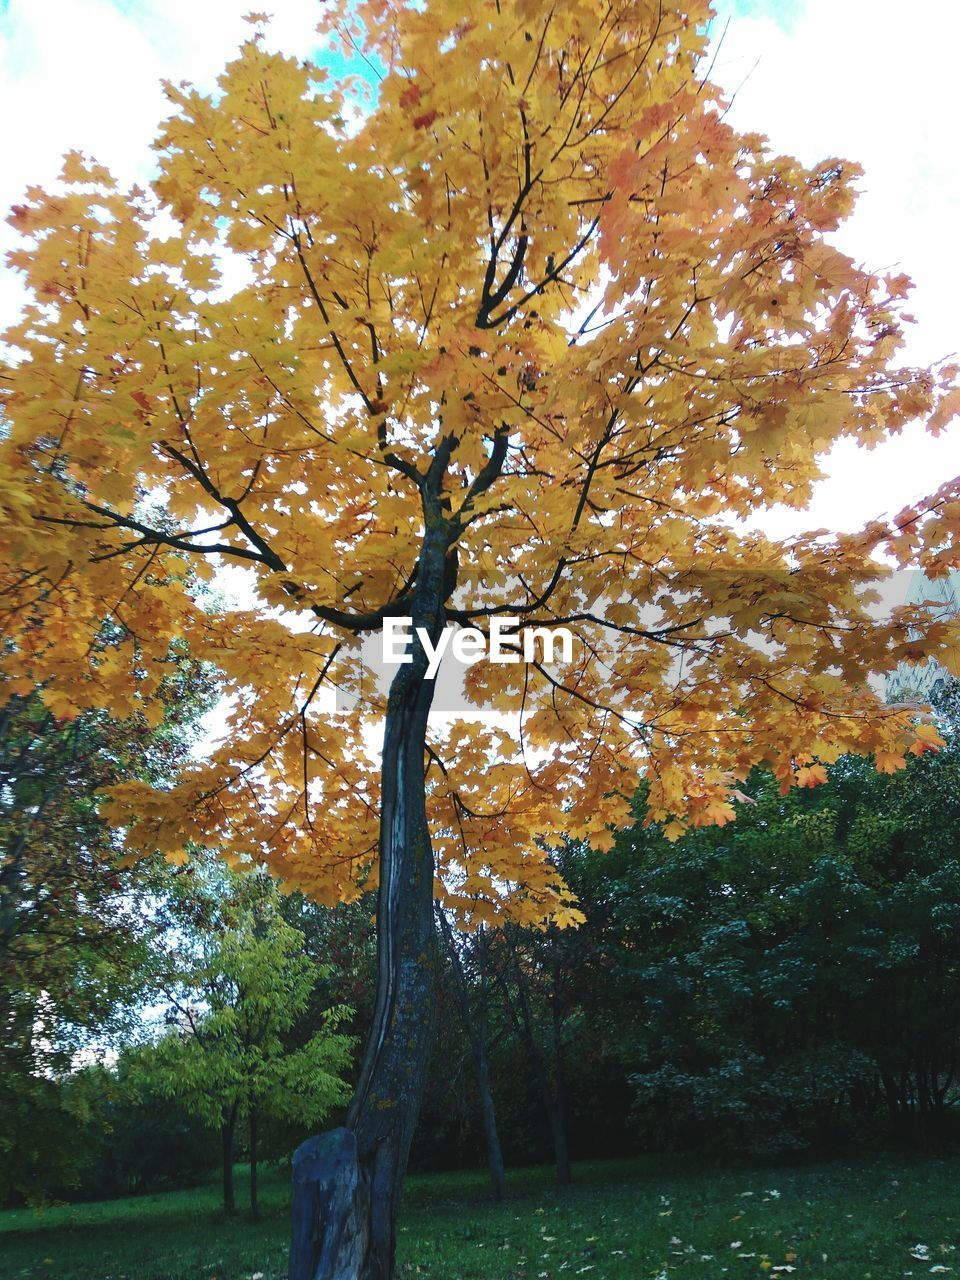 tree, nature, autumn, branch, beauty in nature, tranquility, growth, outdoors, no people, day, tranquil scene, tree trunk, leaf, scenics, sky